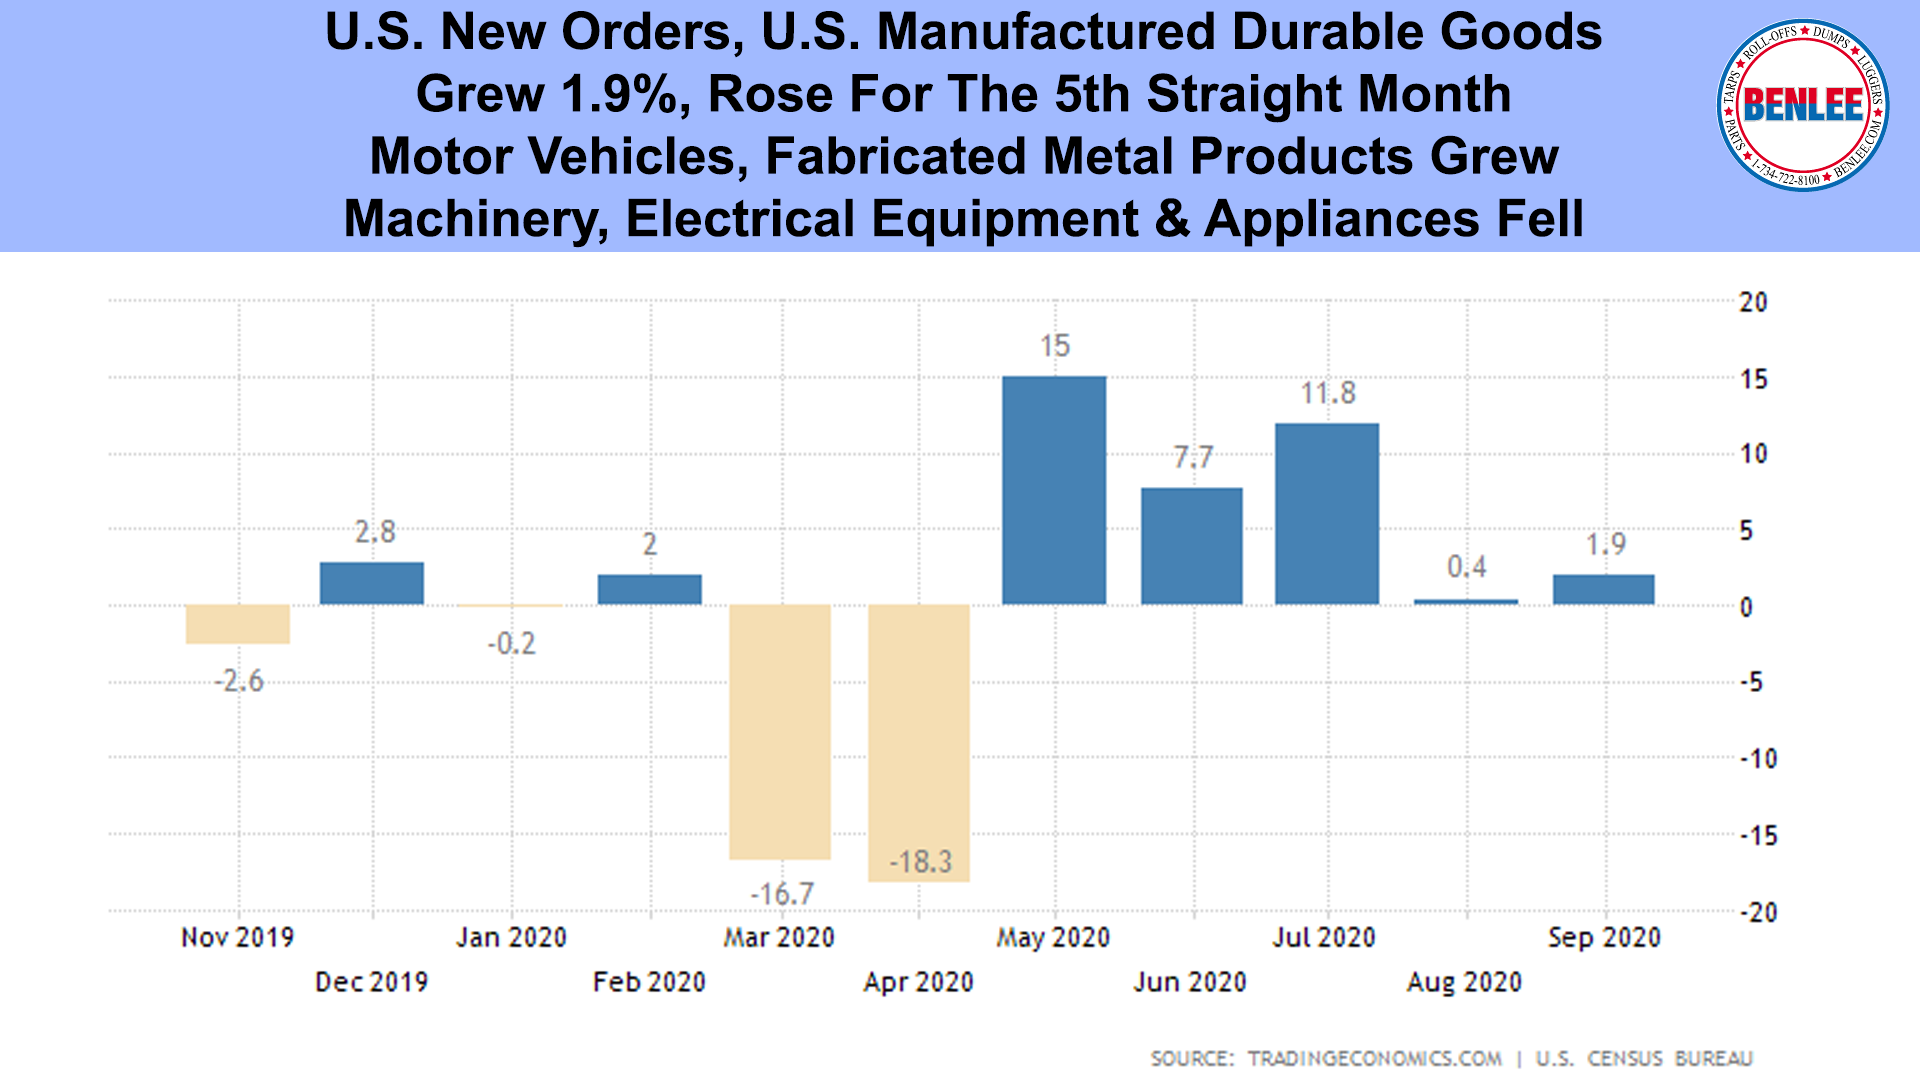 U.S. Manufactured Durable Goods